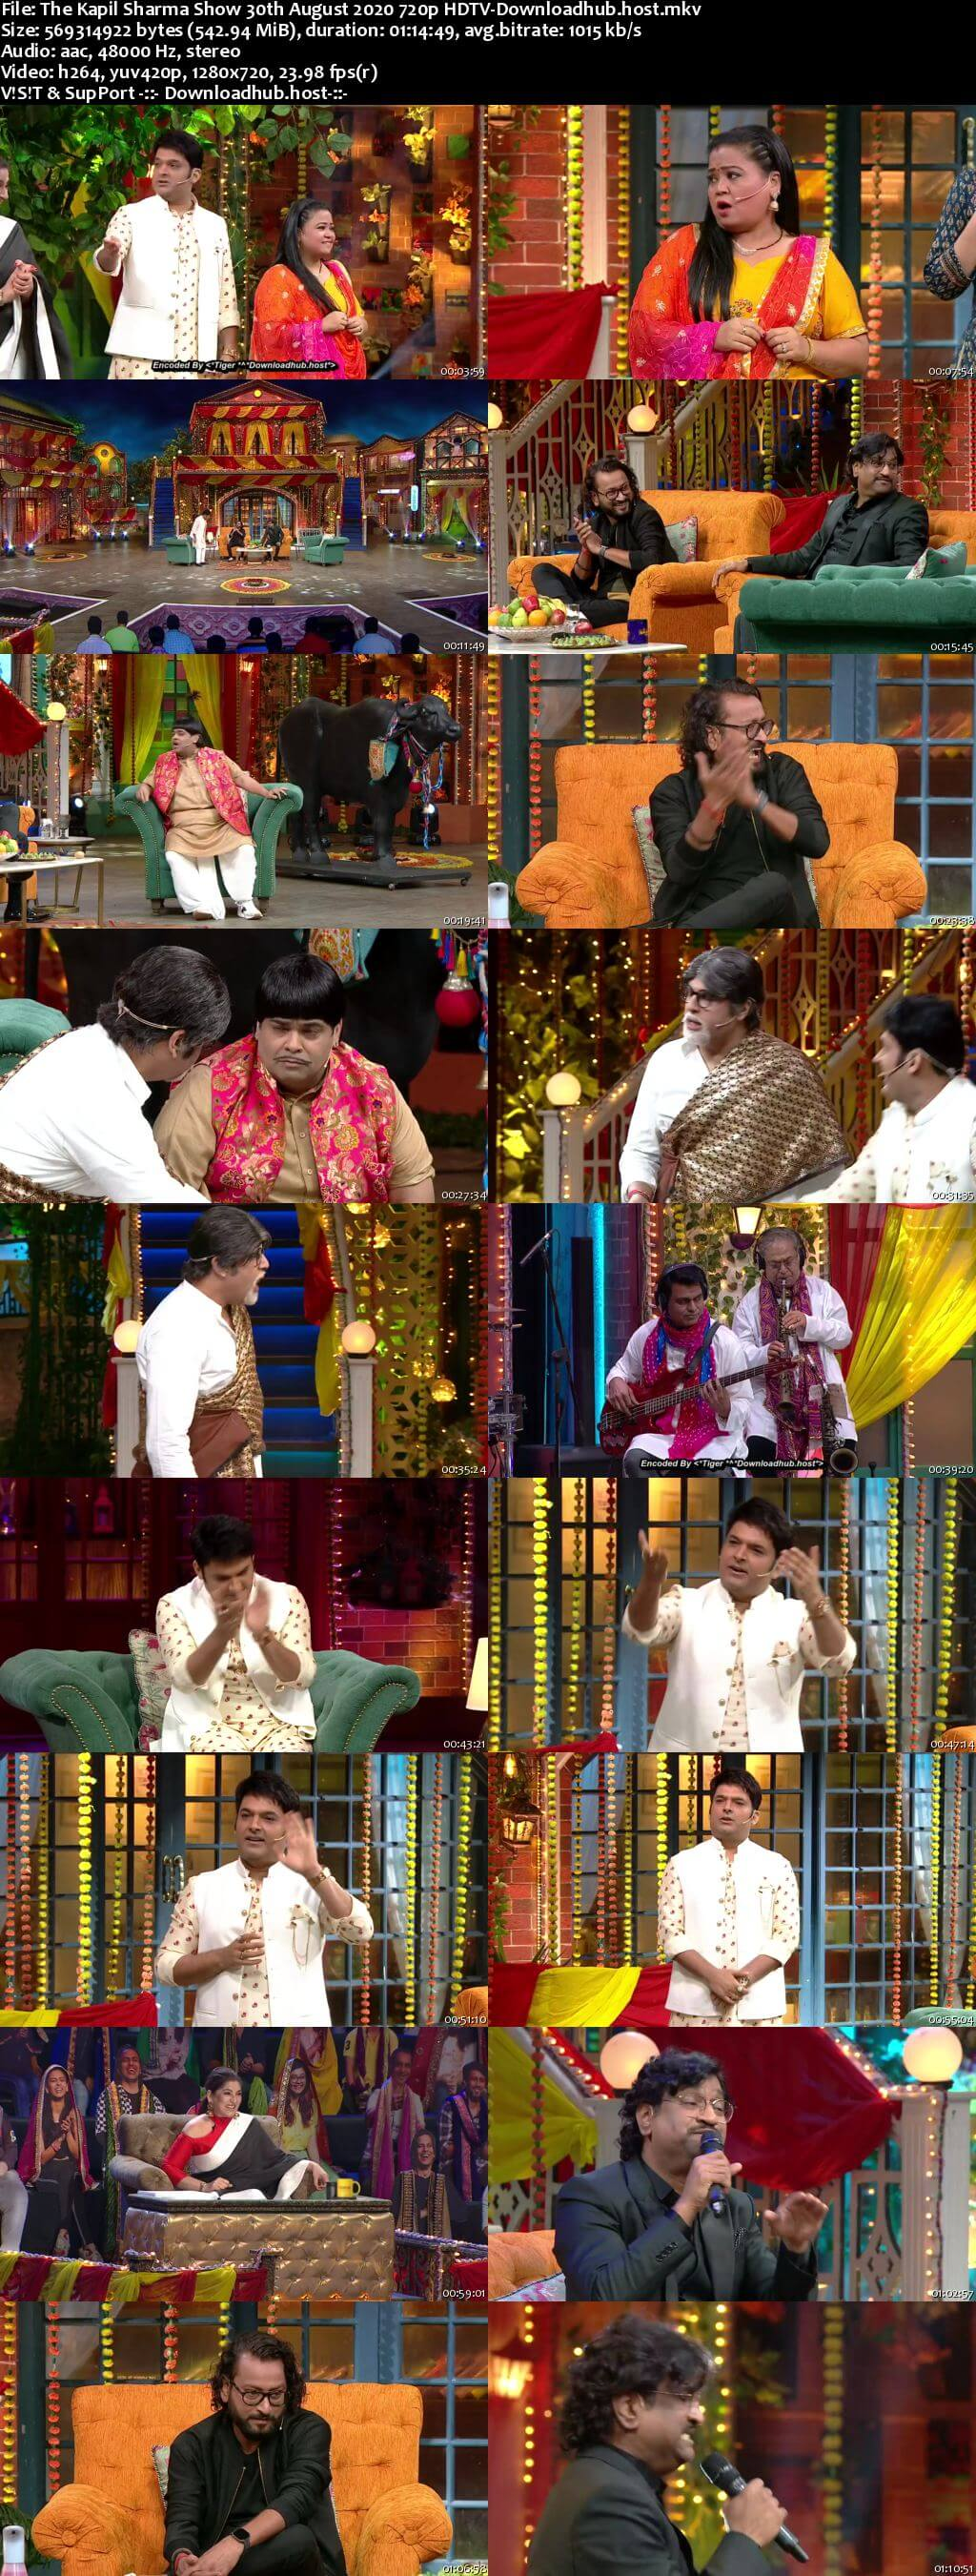 The Kapil Sharma Show 30 August 2020 Episode 137 HDTV 720p 480p